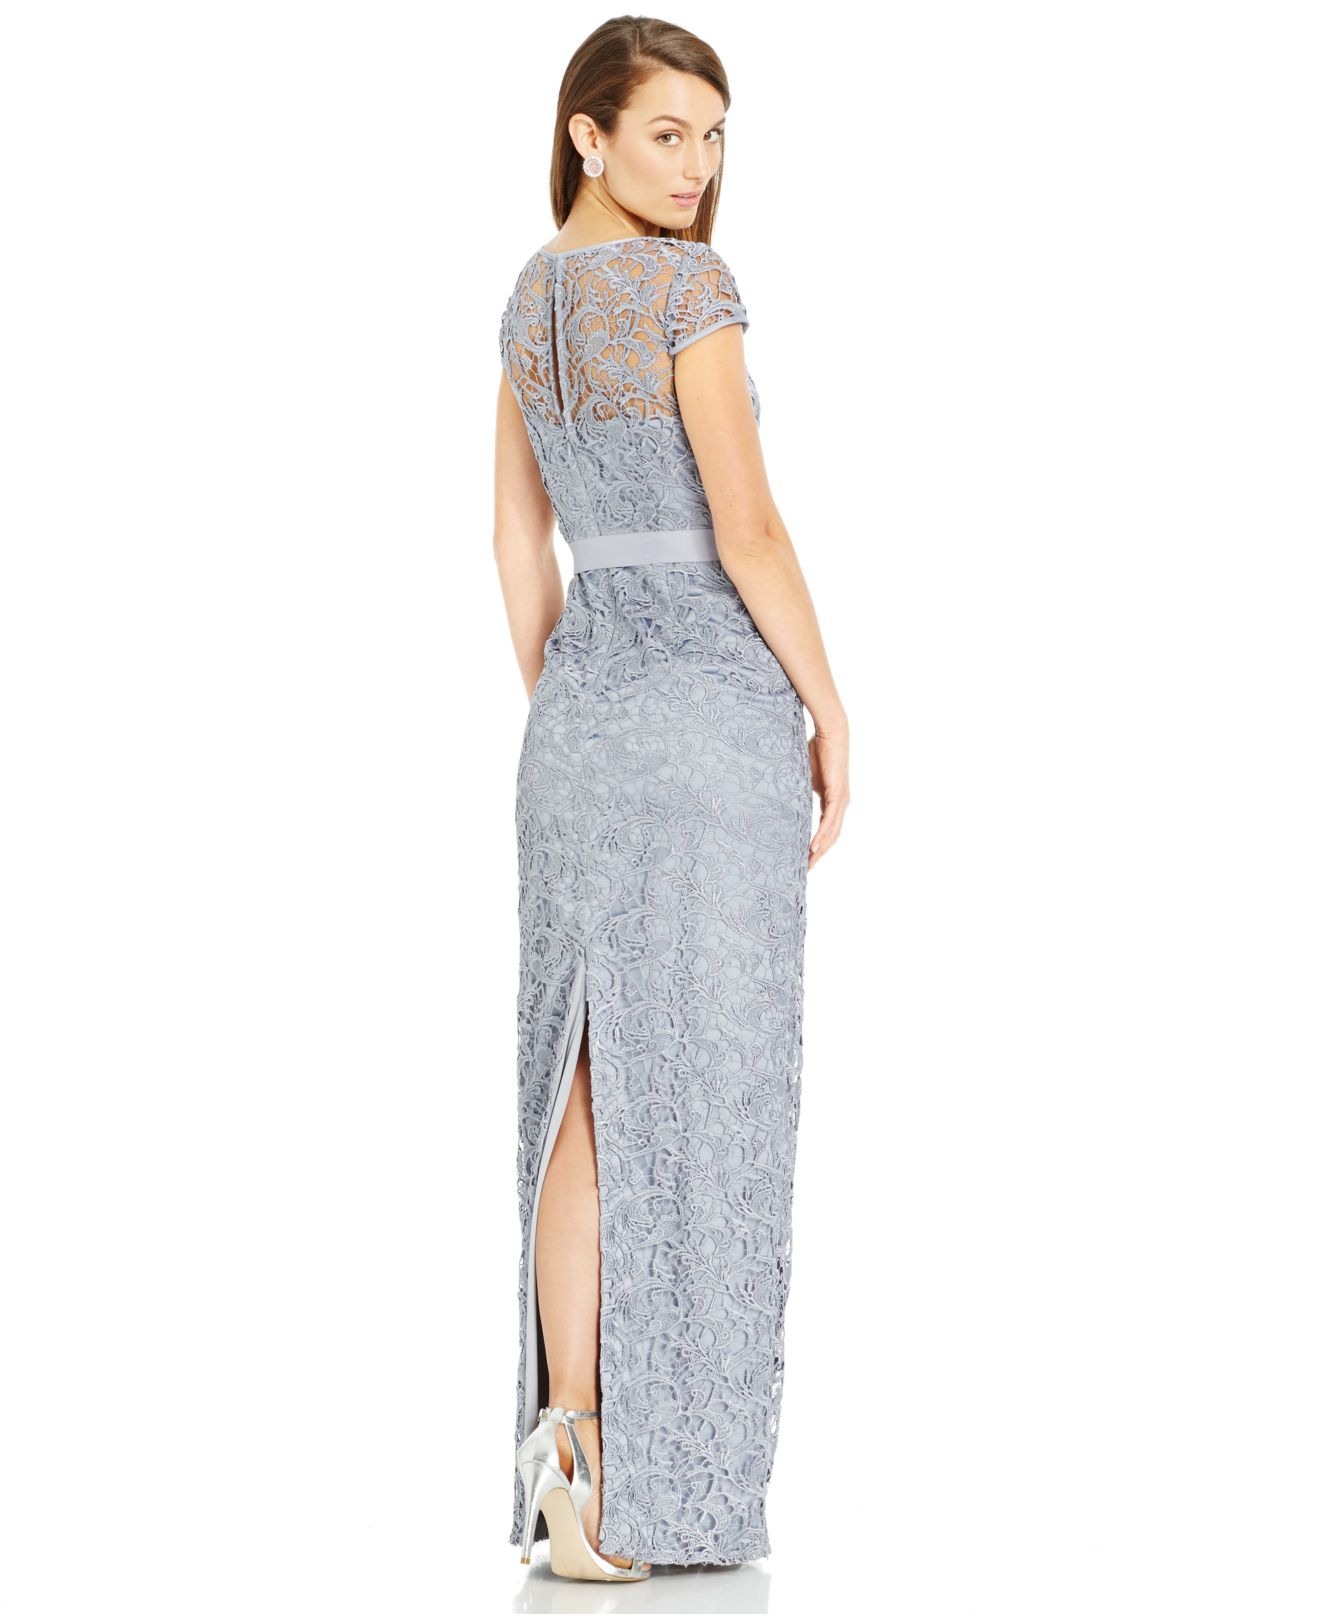 Adrianna Papell Lace Gown_Other dresses_dressesss